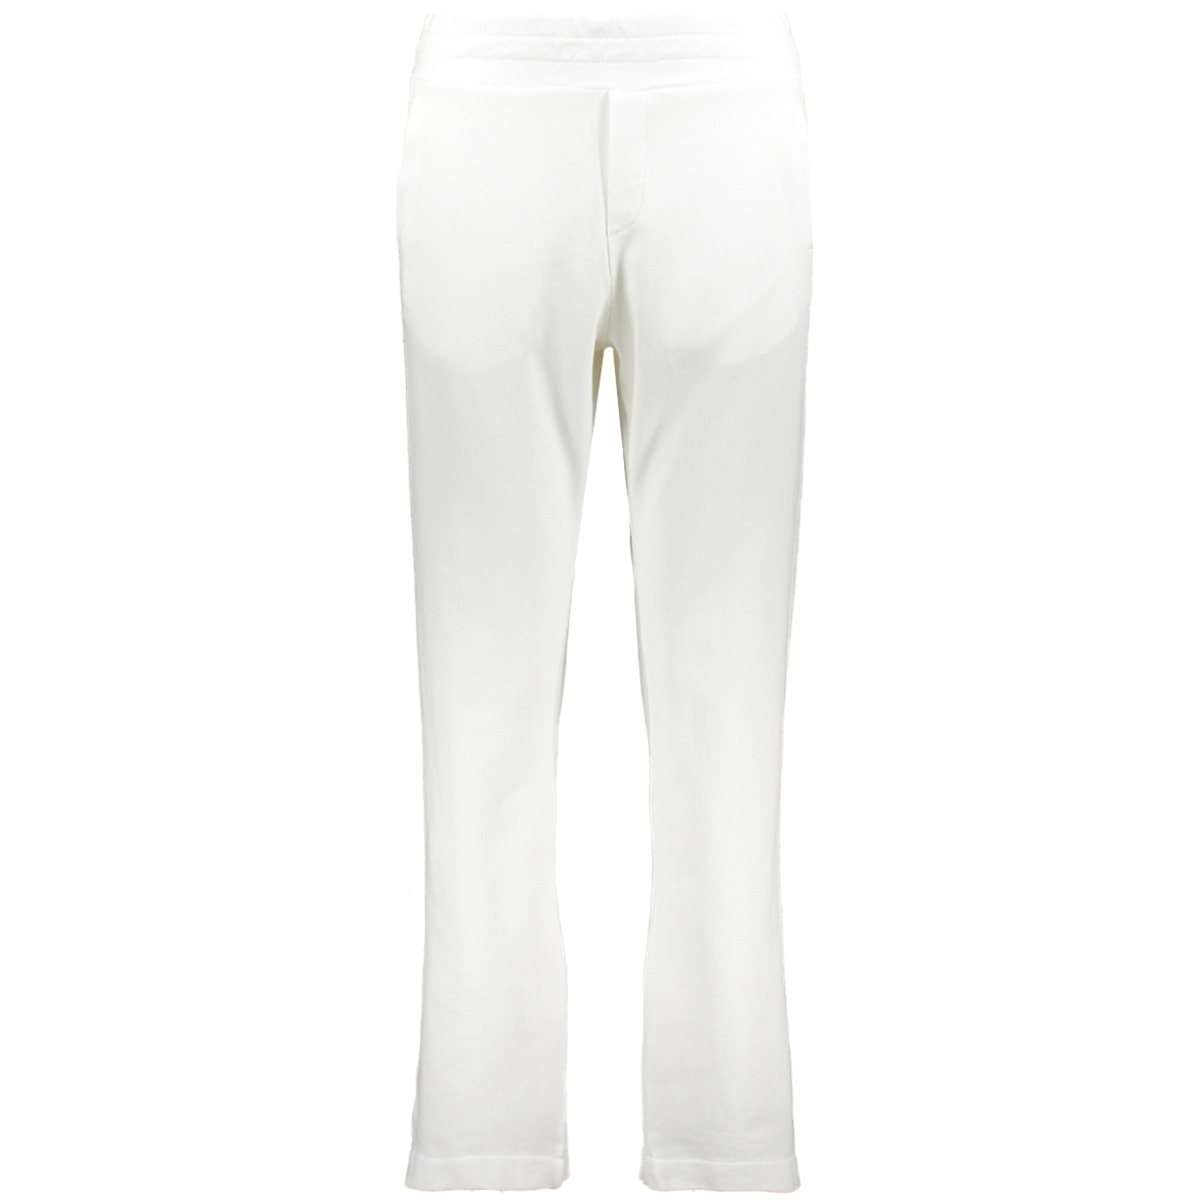 pants 20 045 0201 10 days broek 1001 white